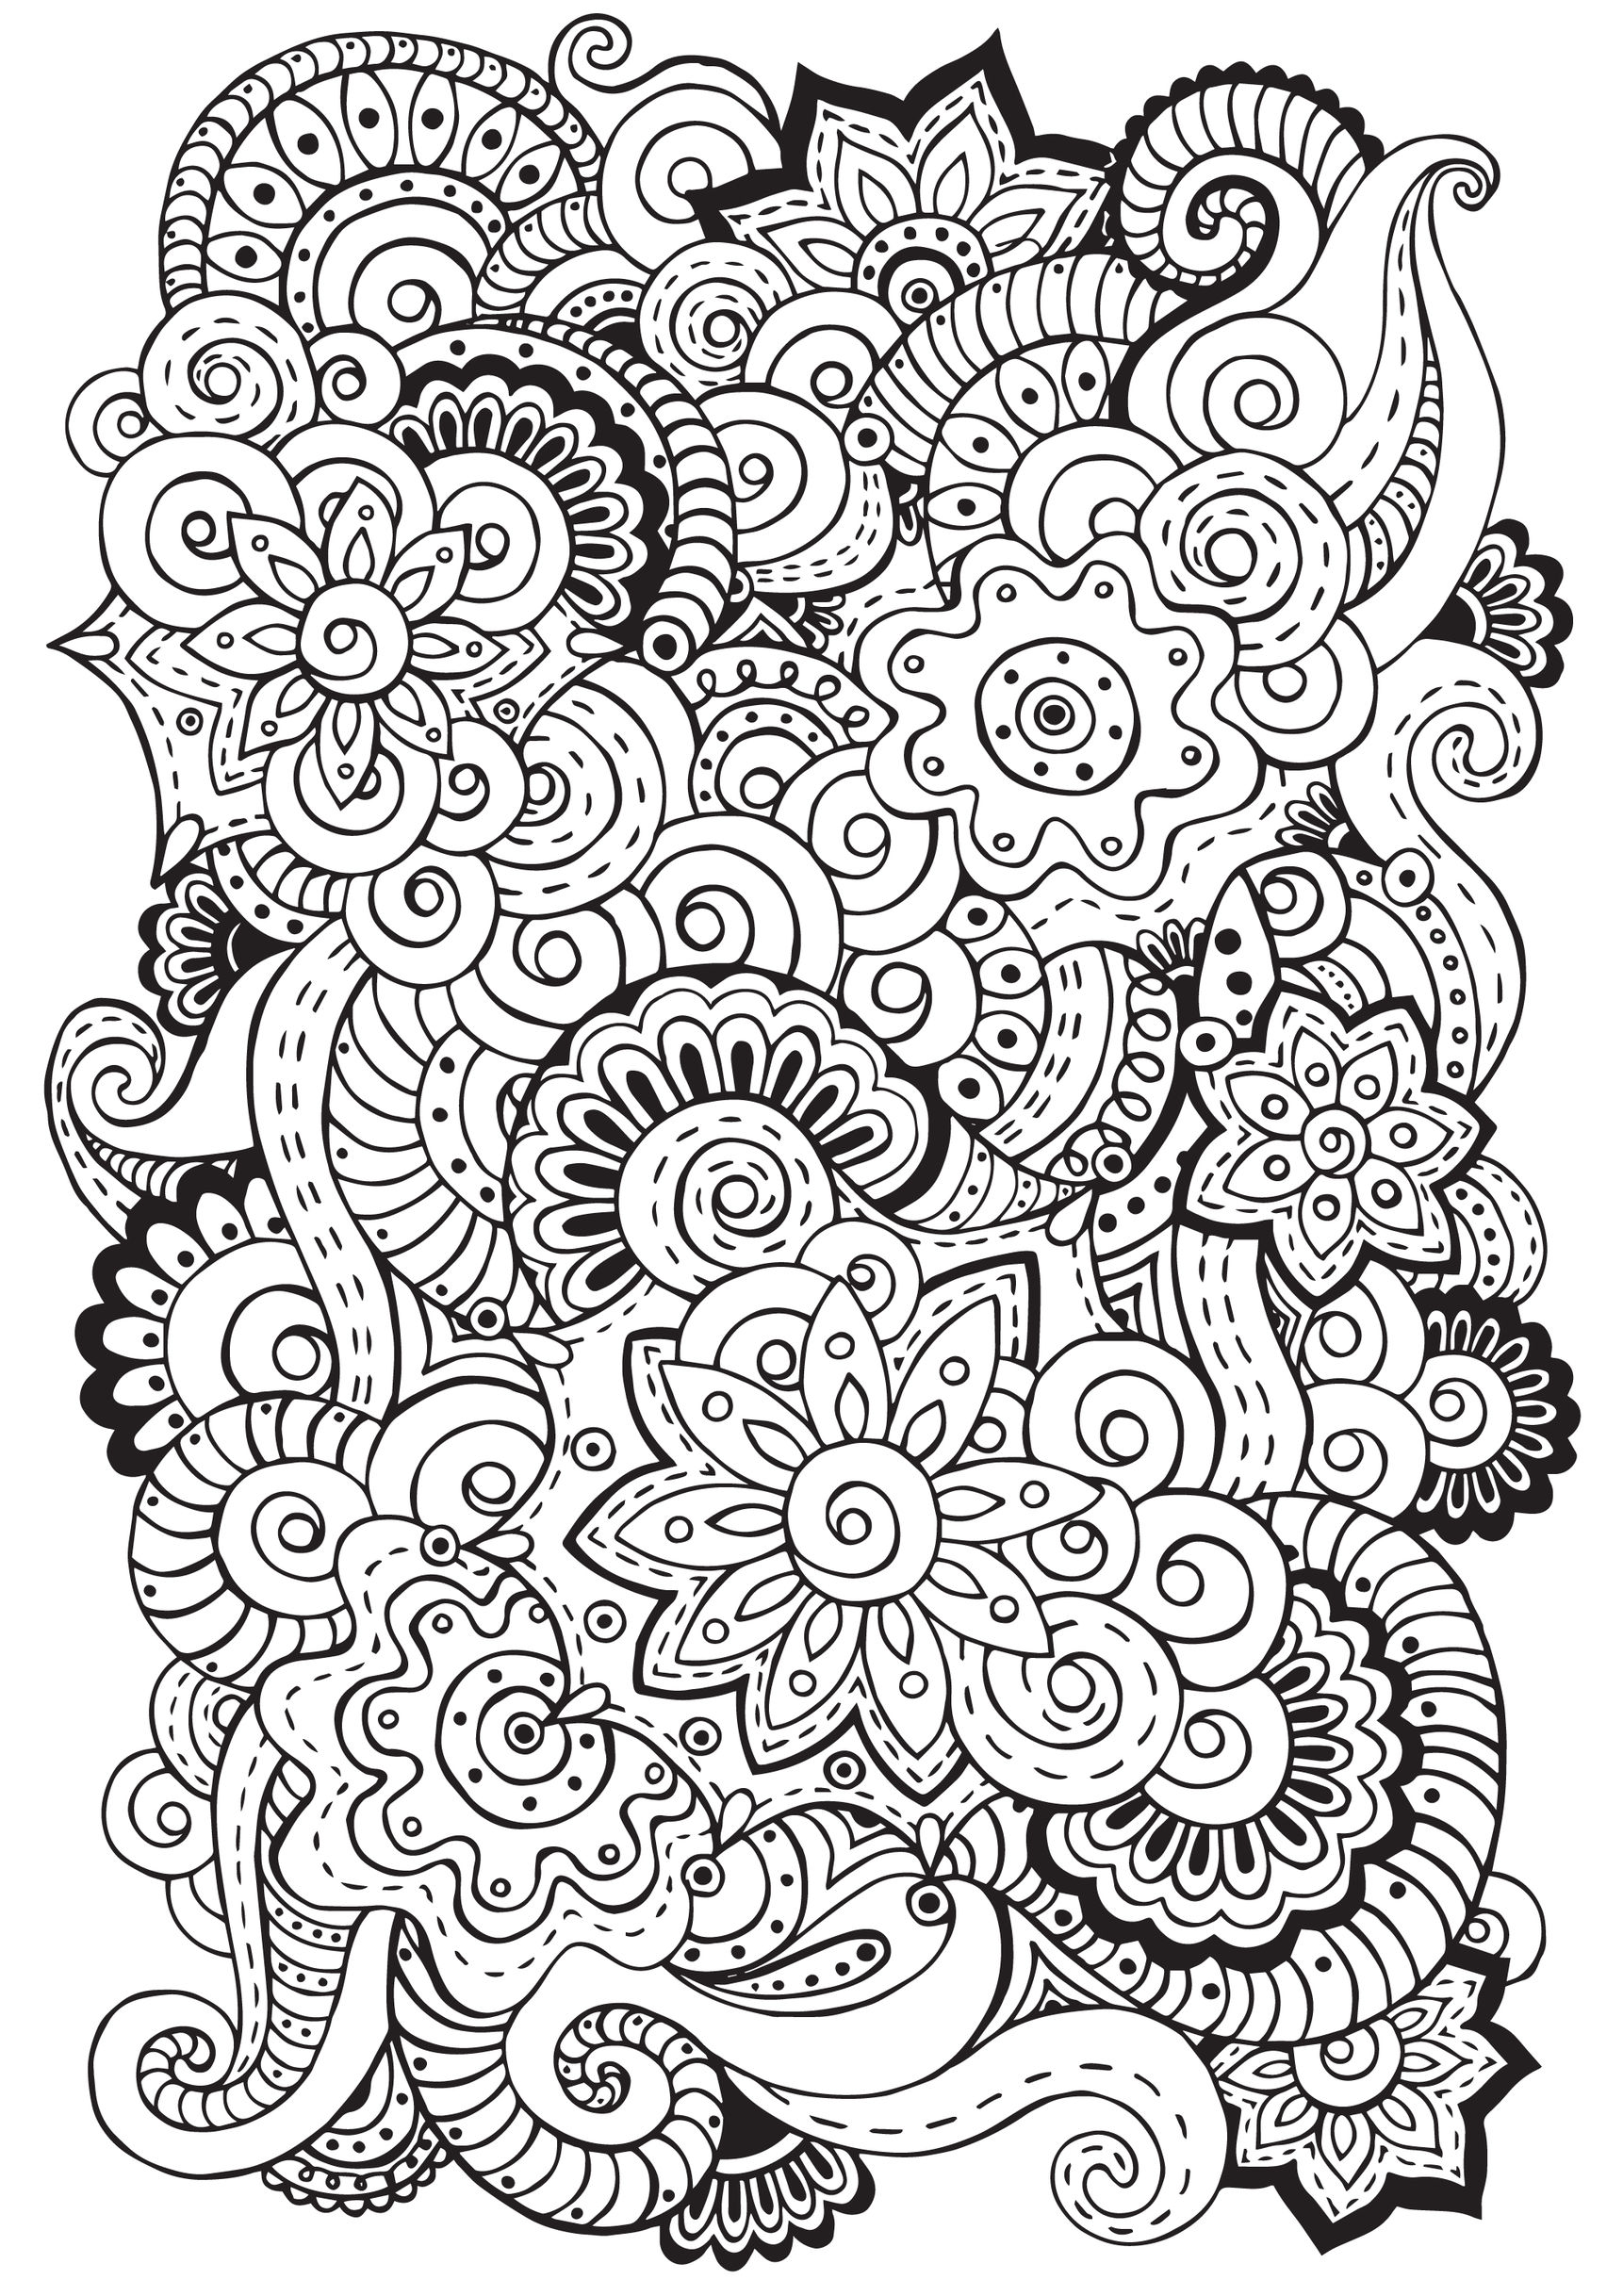 Mindful Meditation The Art Of Adult Coloring Books